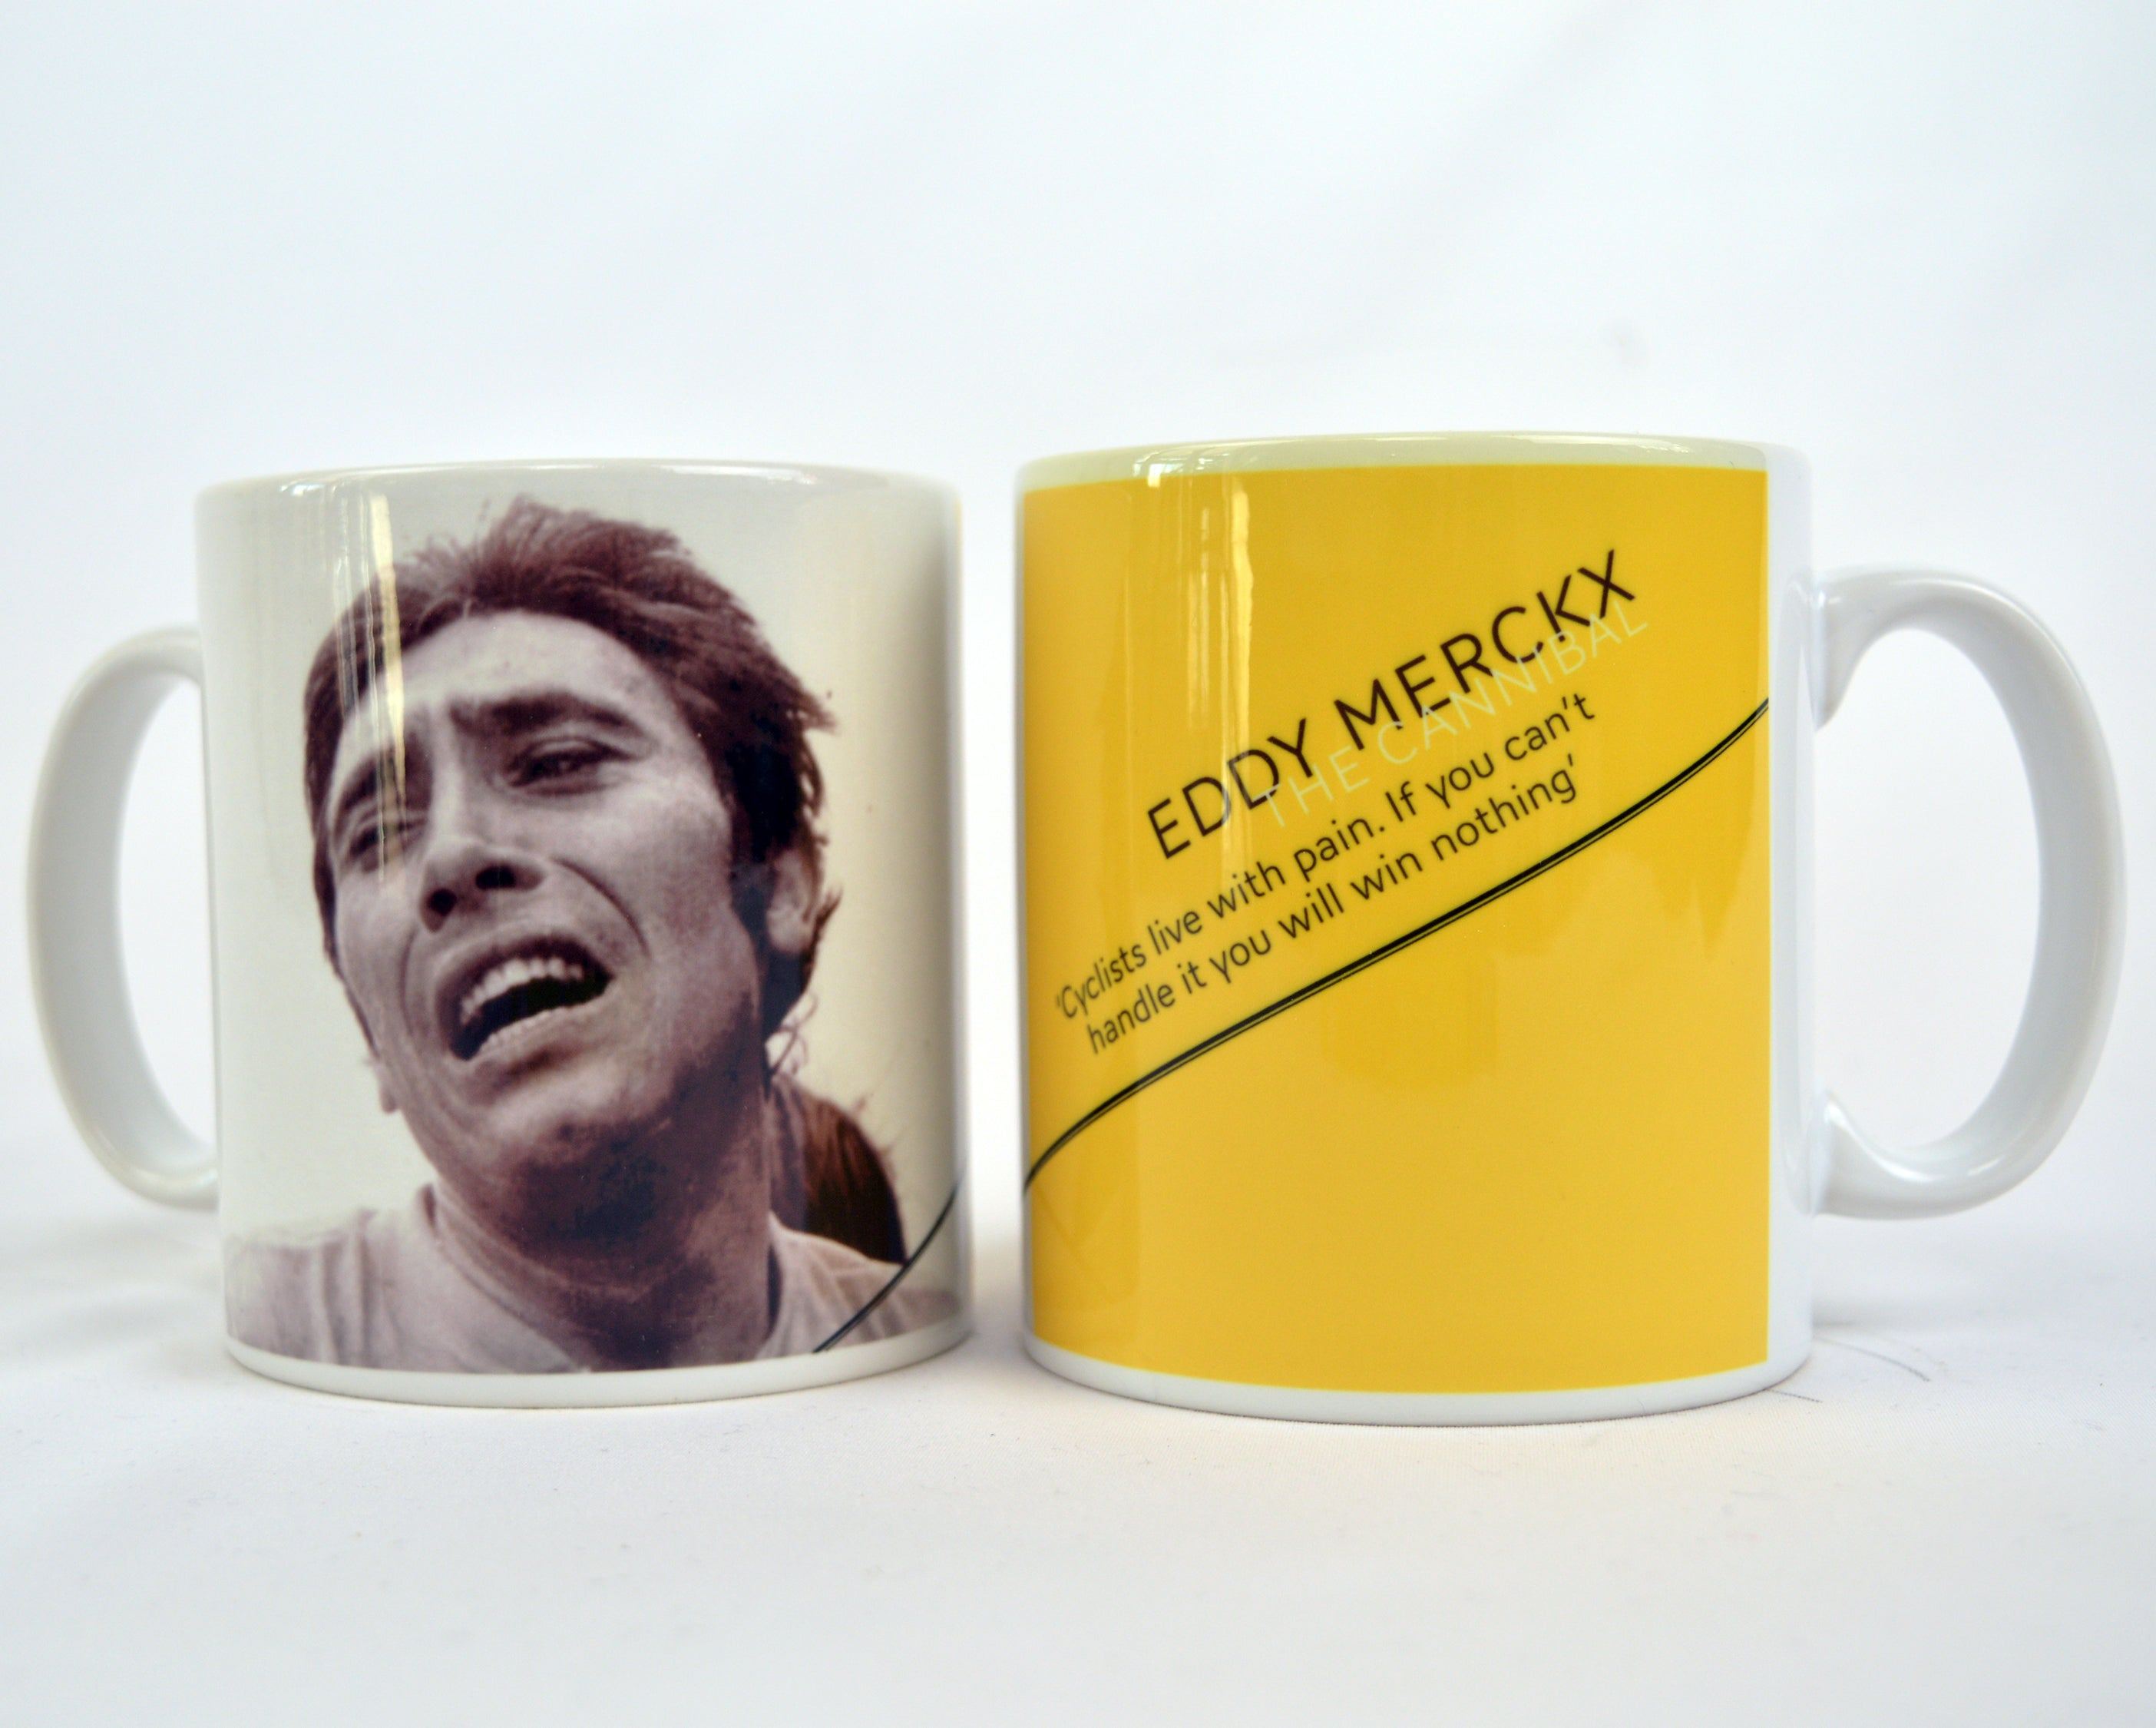 8986964e7 Eddy Merckx Cycling Quote Mug - Summit Finish